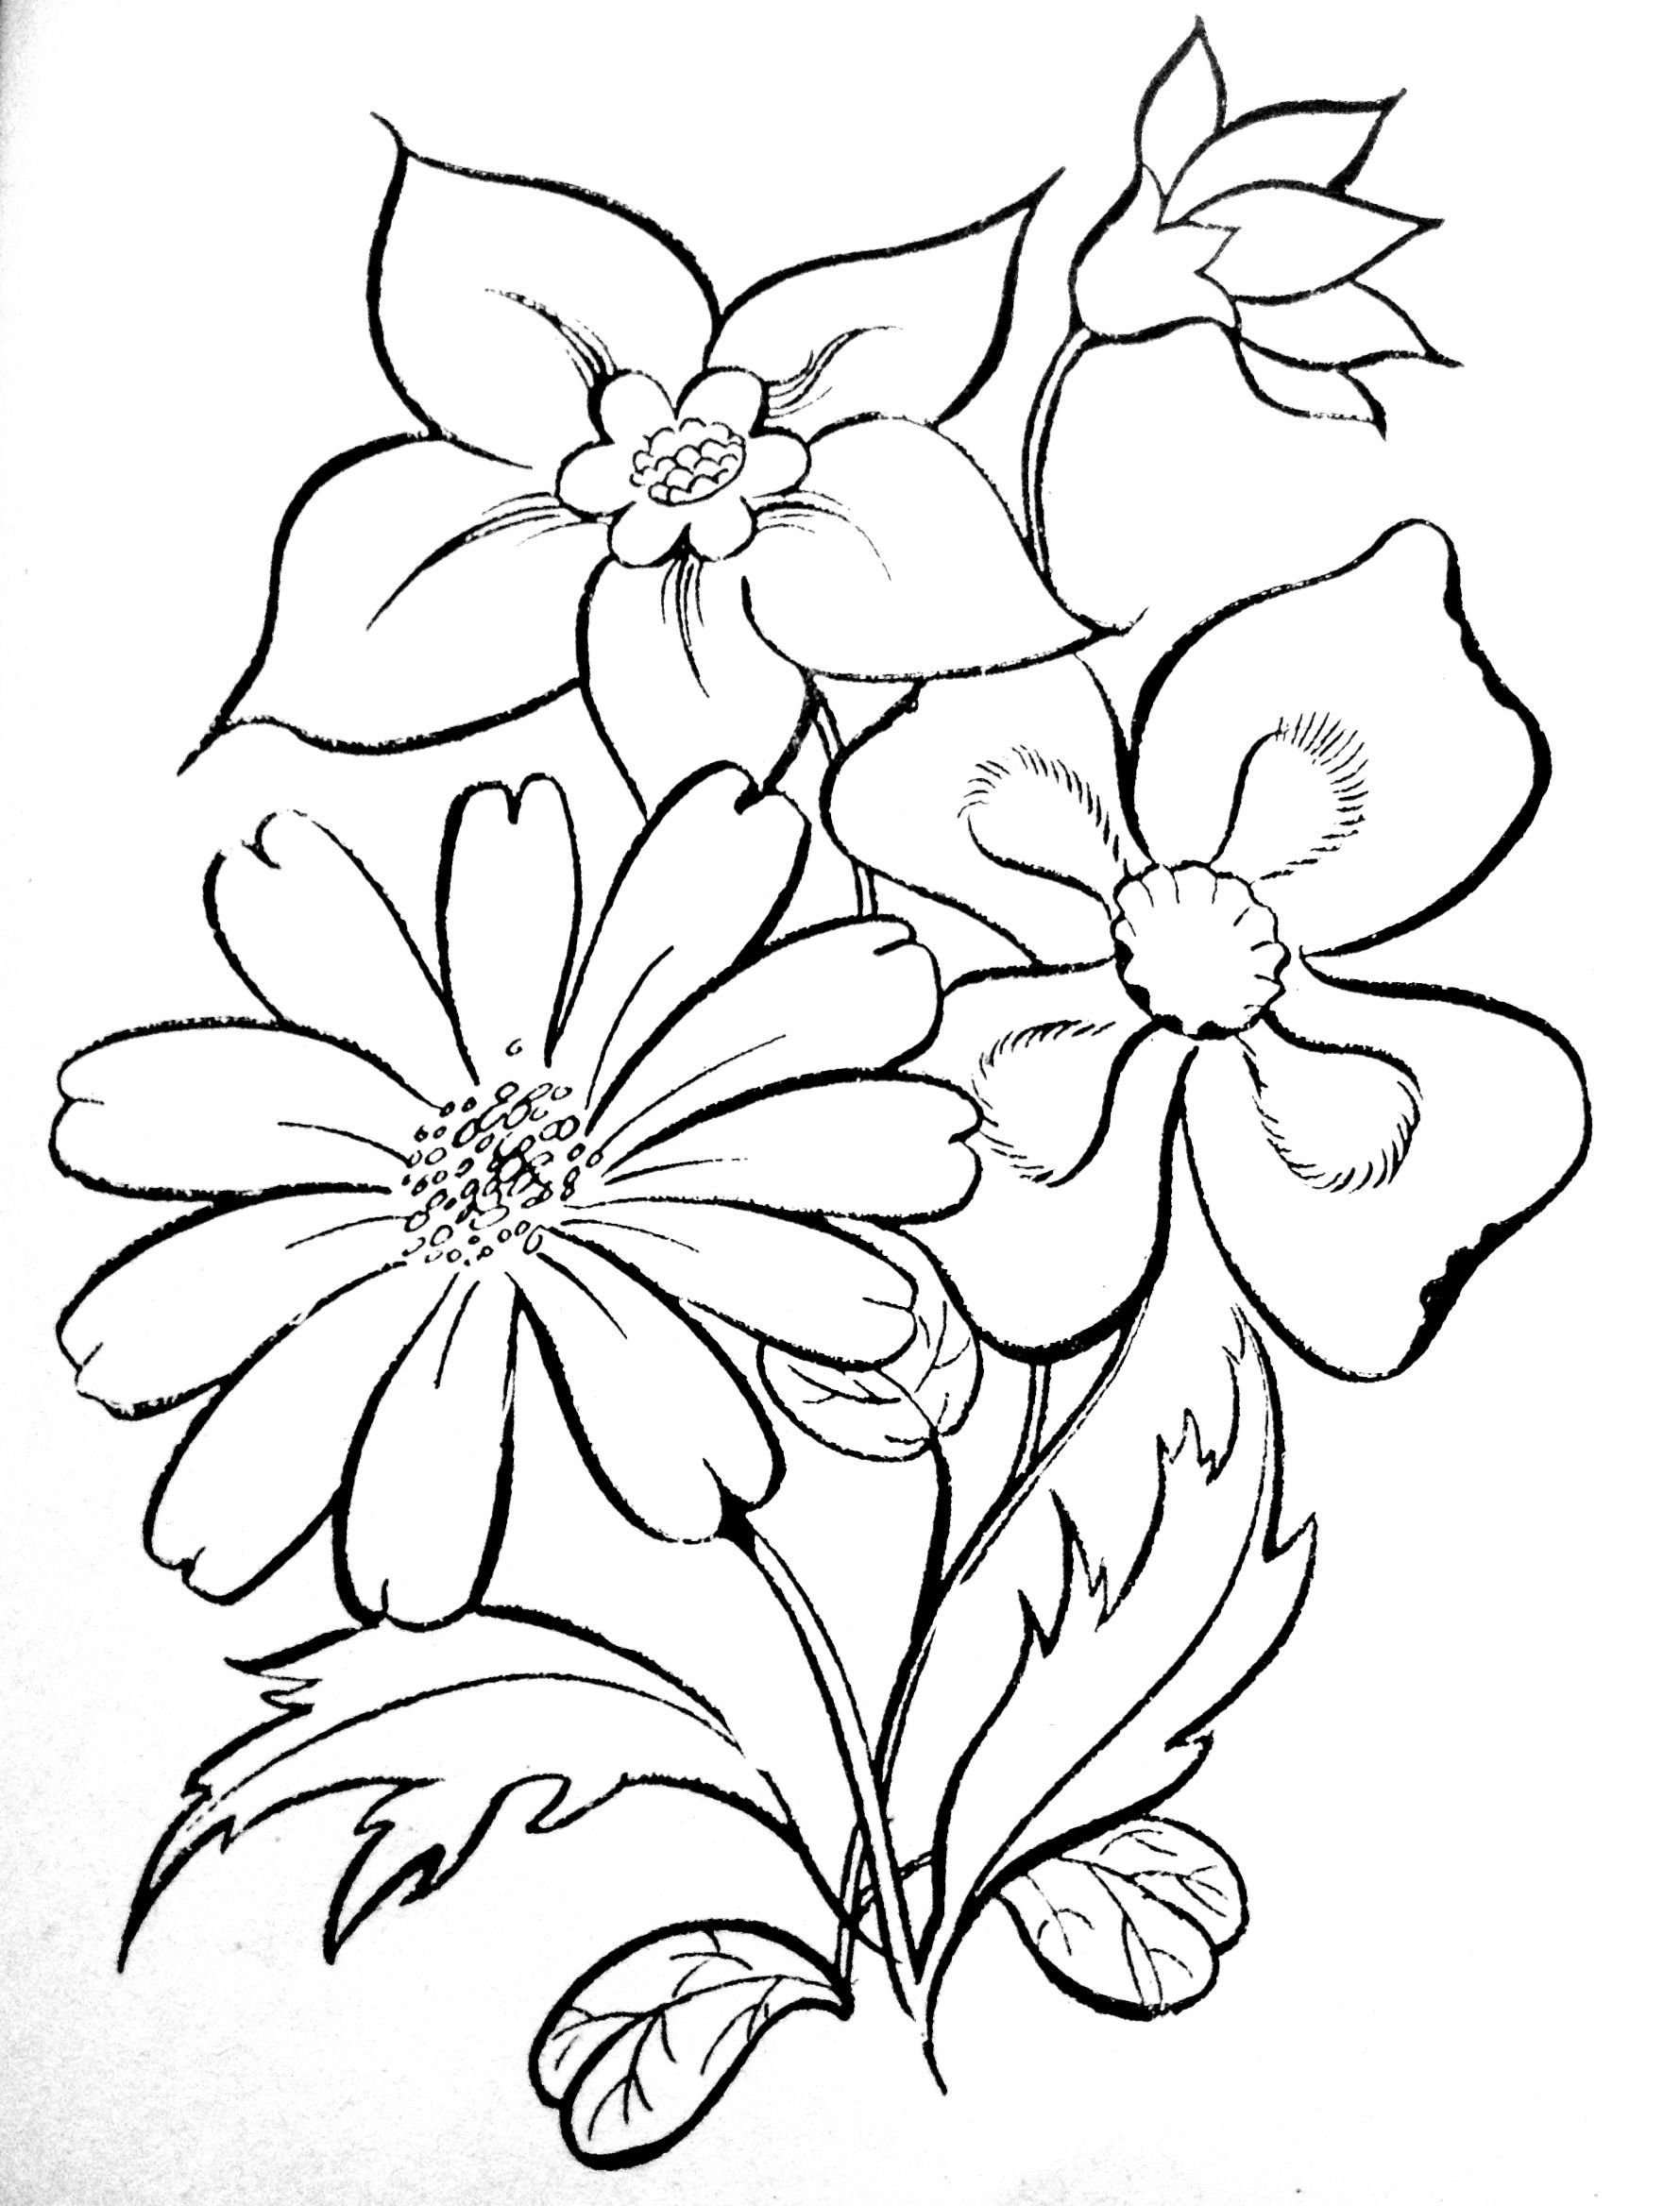 Pin by Jillane Manville on Coloring pages & Basic patterns templates